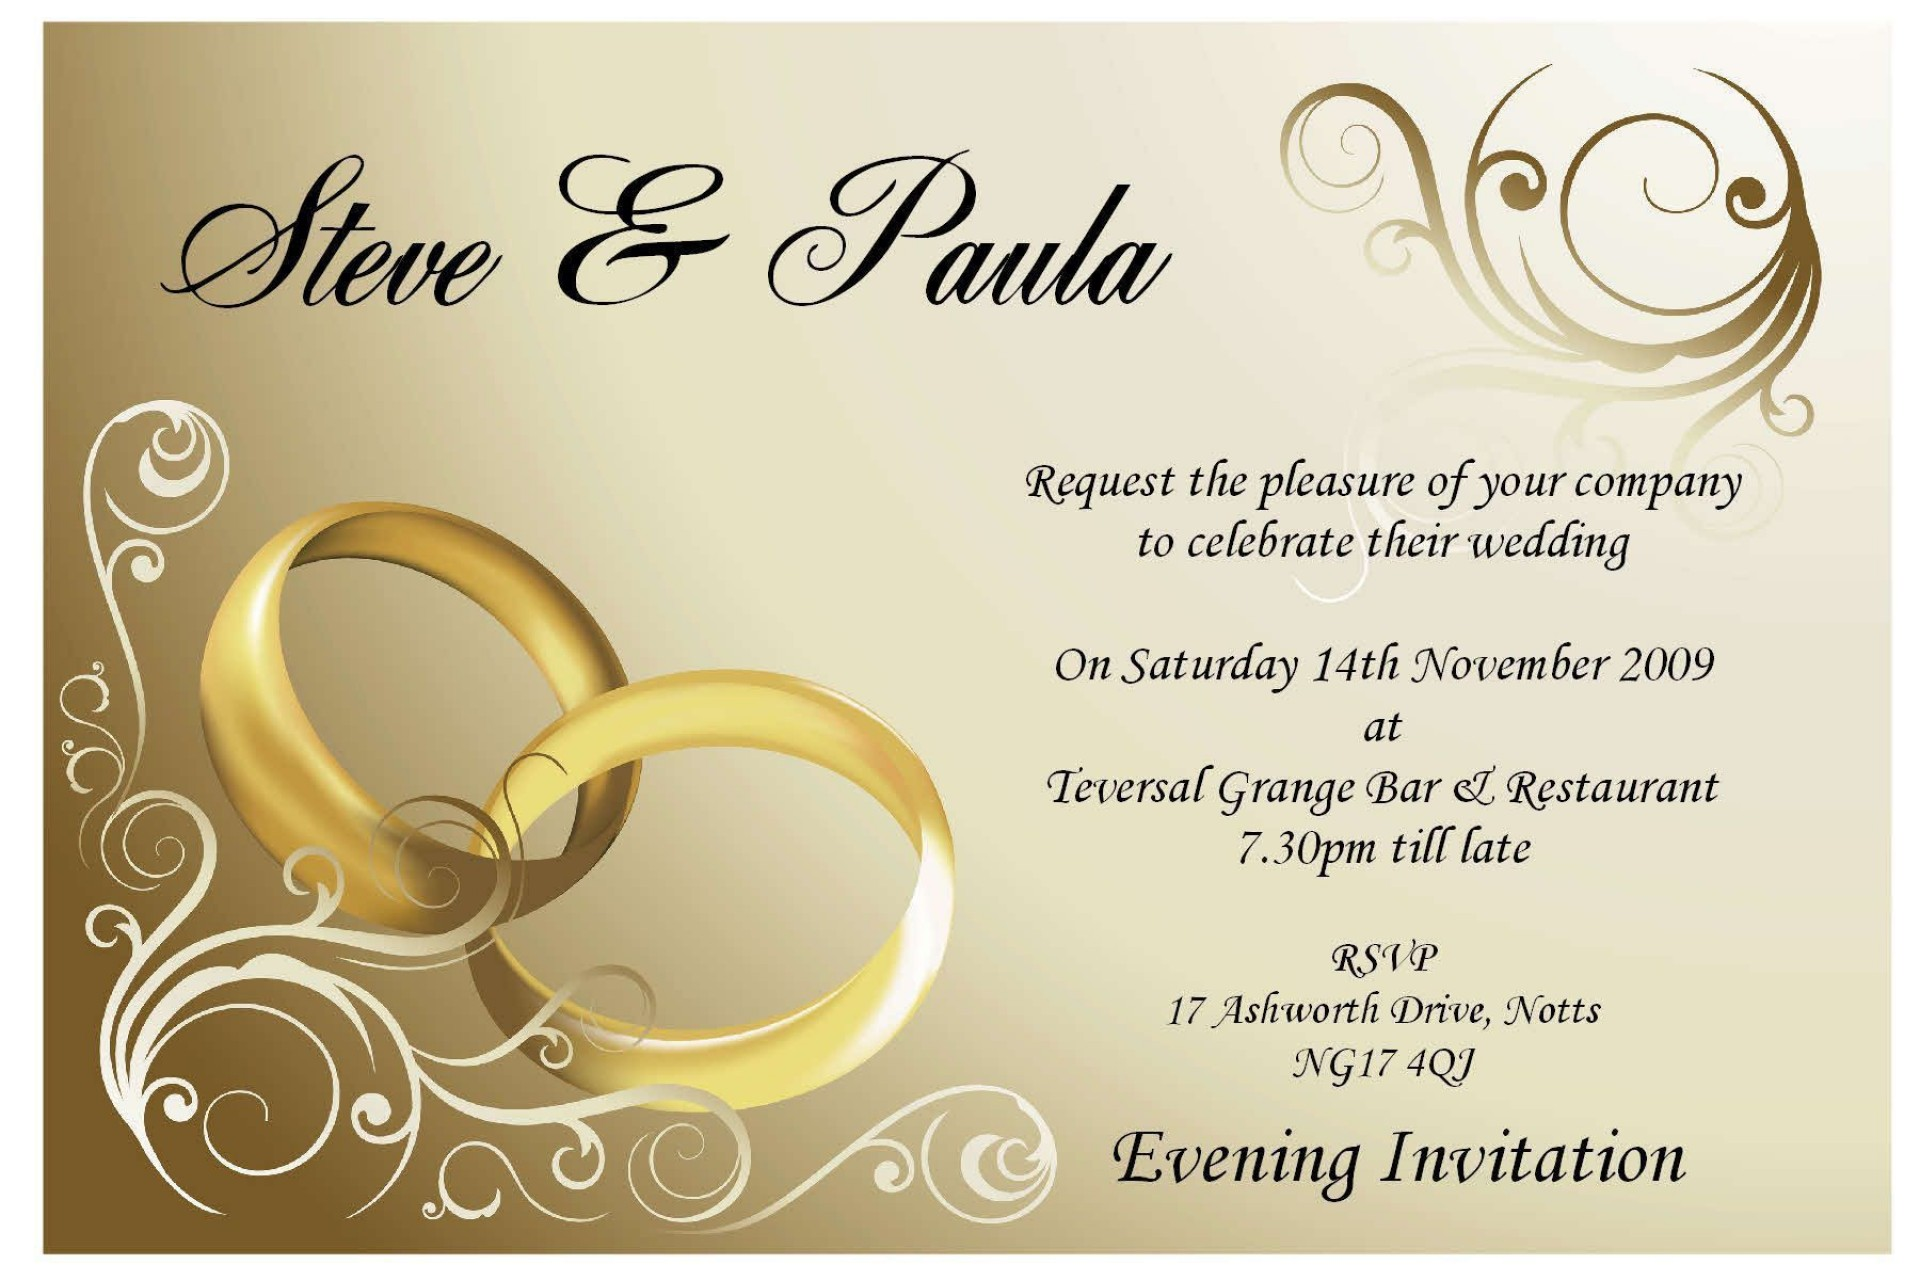 001 Remarkable Free Engagement Invitation Template Online With Photo High Definition 1920